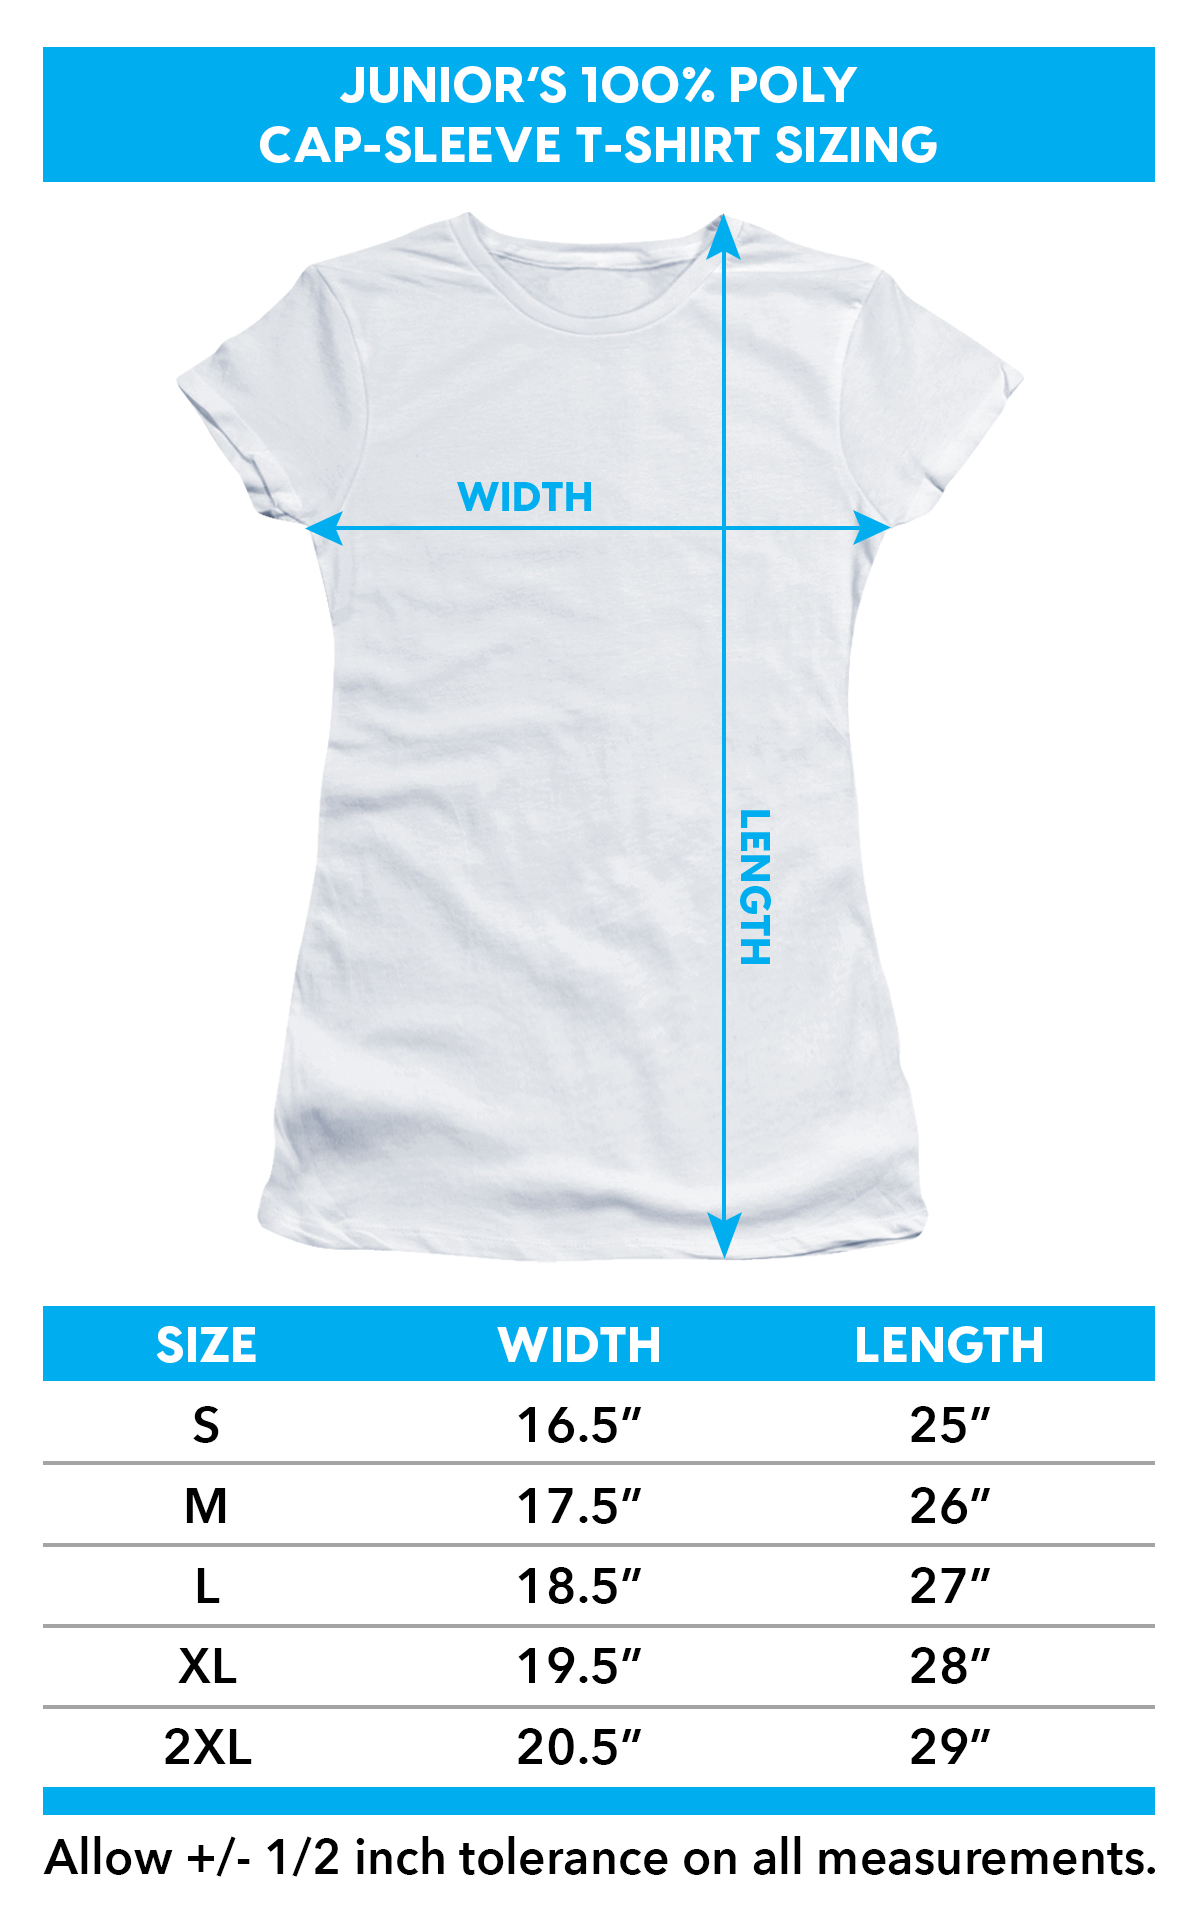 Sizing Chart for Kill Bill Girls T-Shirt - Crazy 88s